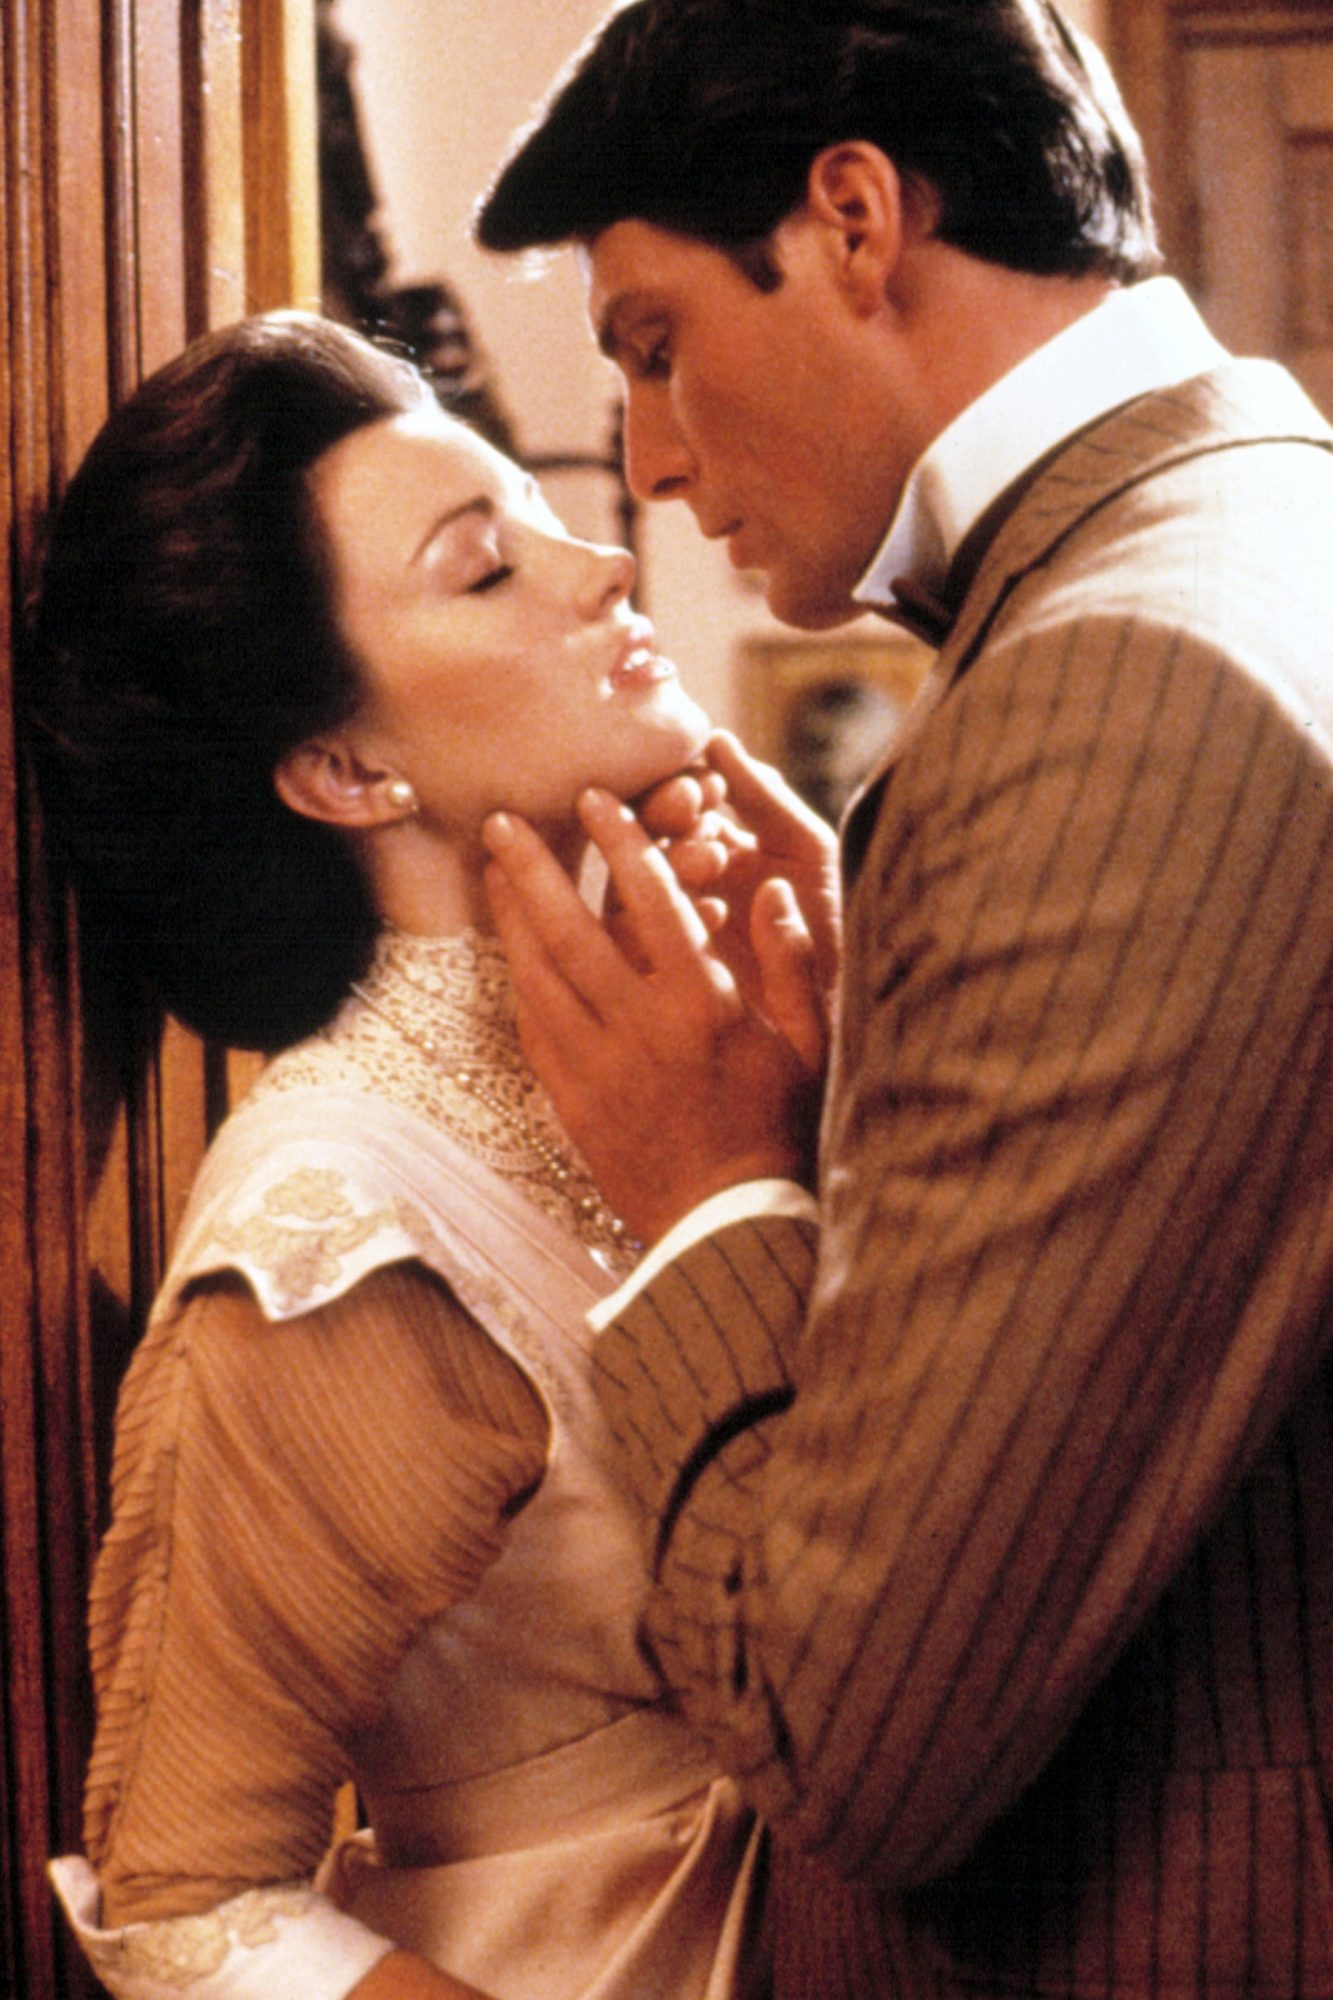 SOMEWHERE IN TIME, Jane Seymour, Christopher Reeve, 1980.